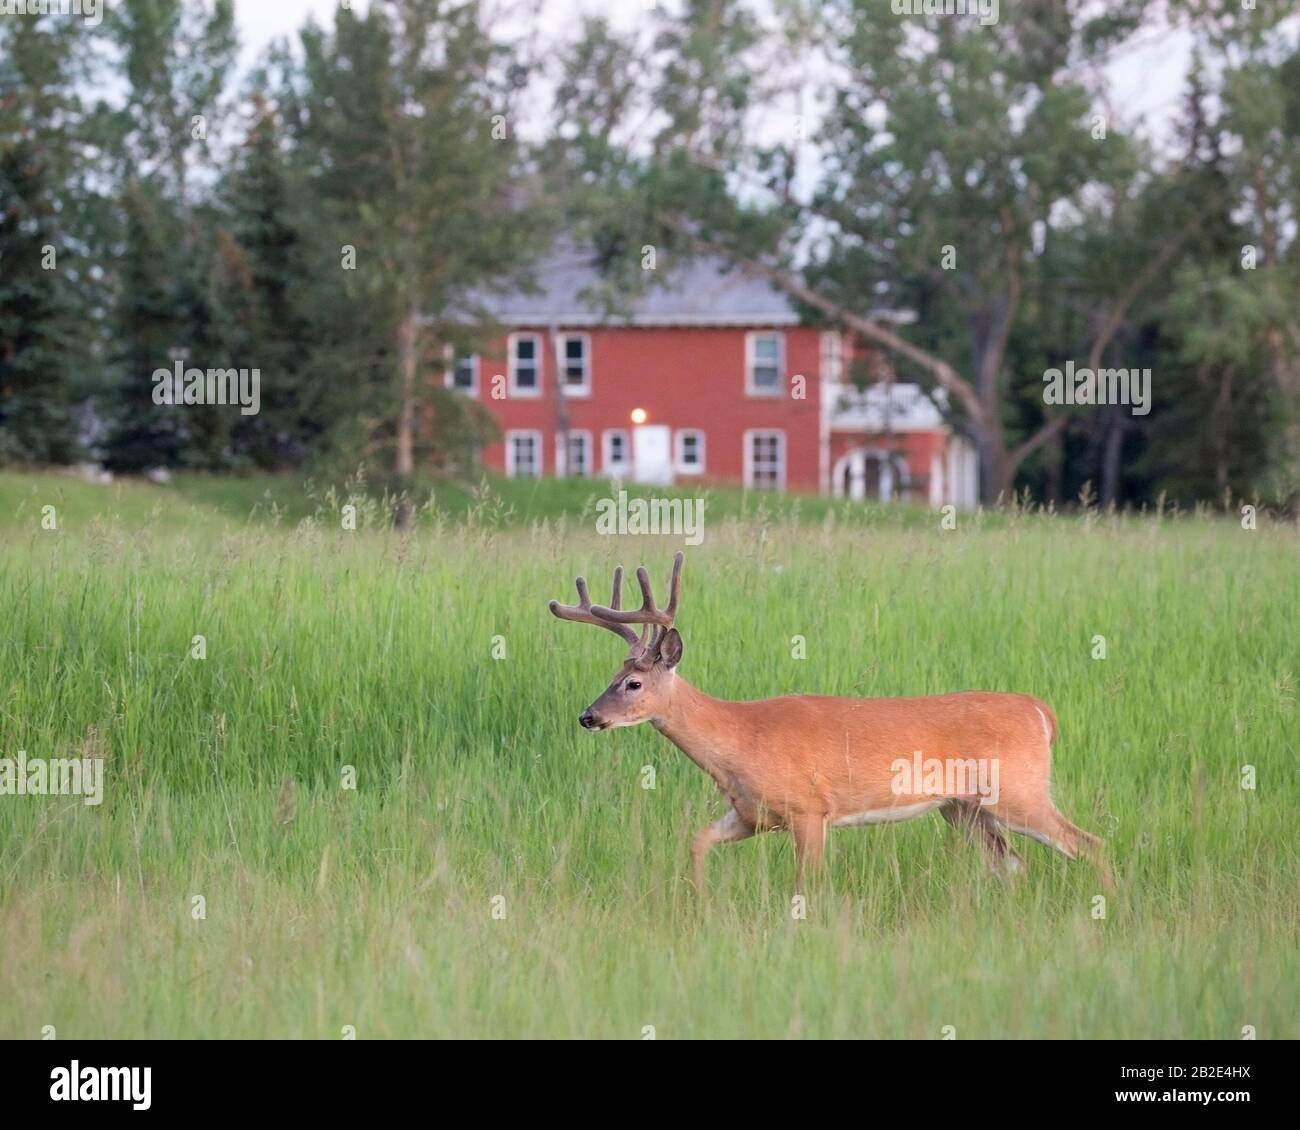 White-tailed deer buck (Odocoileus virginianus) with velvet antlers walking through meadow with house in background Stock Photo